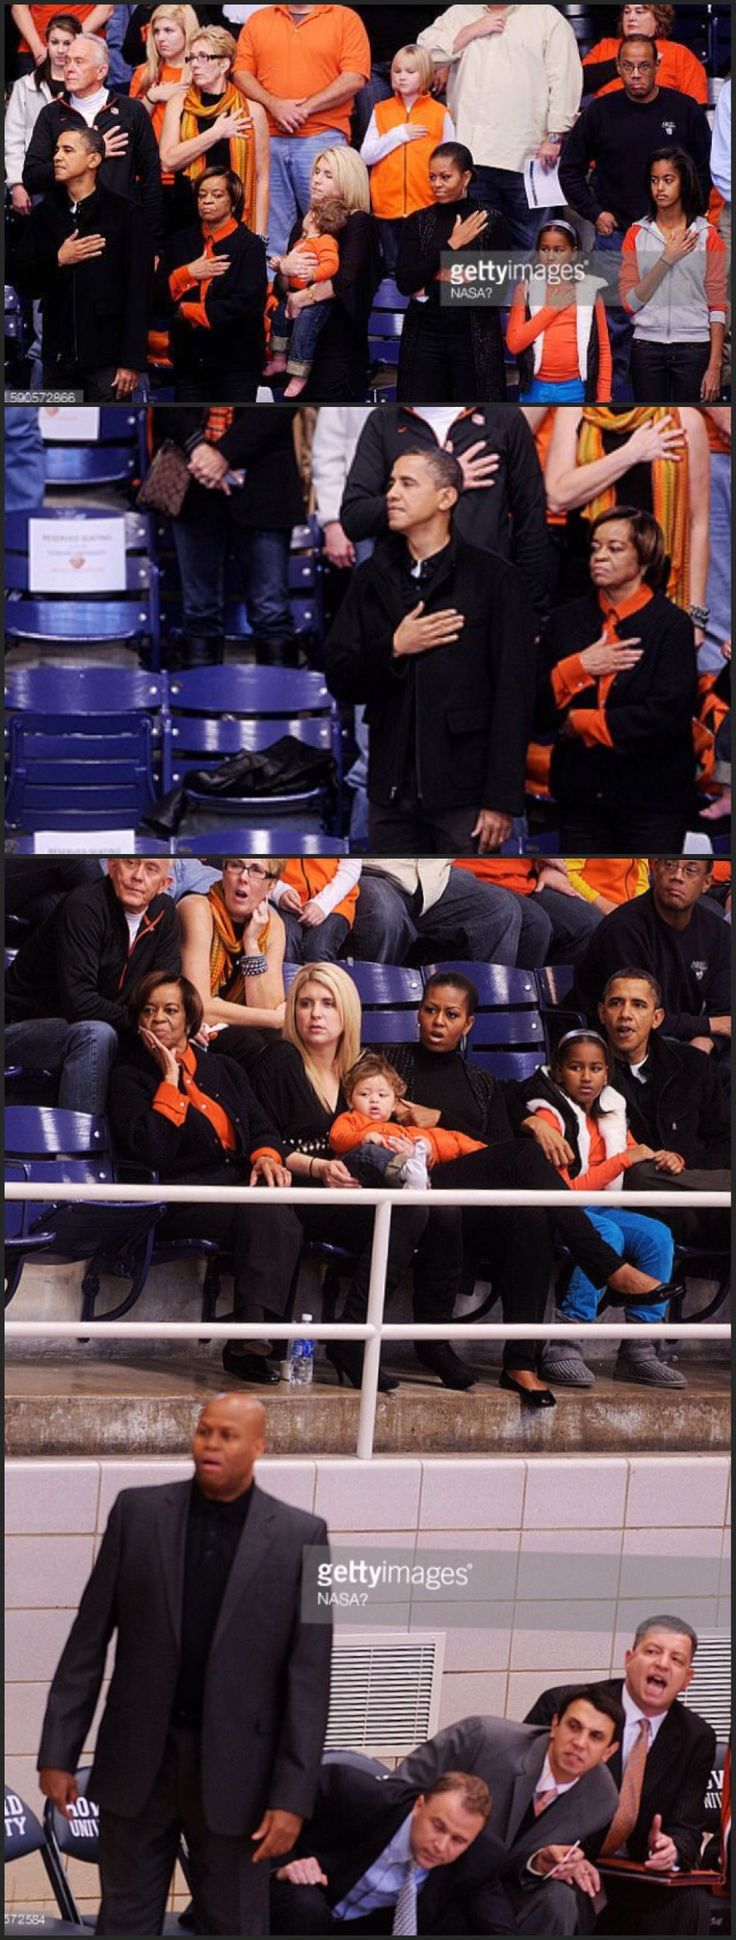 #44thPresident #BarackObama #FirstLady #MichelleObama & Their #Daughters #MaliaObama #SashaObama with his mother in law #MarianRobinson during a college basketball game at Howard University November 27, 2010 in Washington, DC. President Barack Obama attended the game between Howard University and Oregon State, which is #coached by his brother in law #CraigRobinson #ObamaFamily #ObamaLegacy #ObamaHistory #ObamaLibrary #ObamaFoundation Obama.Org